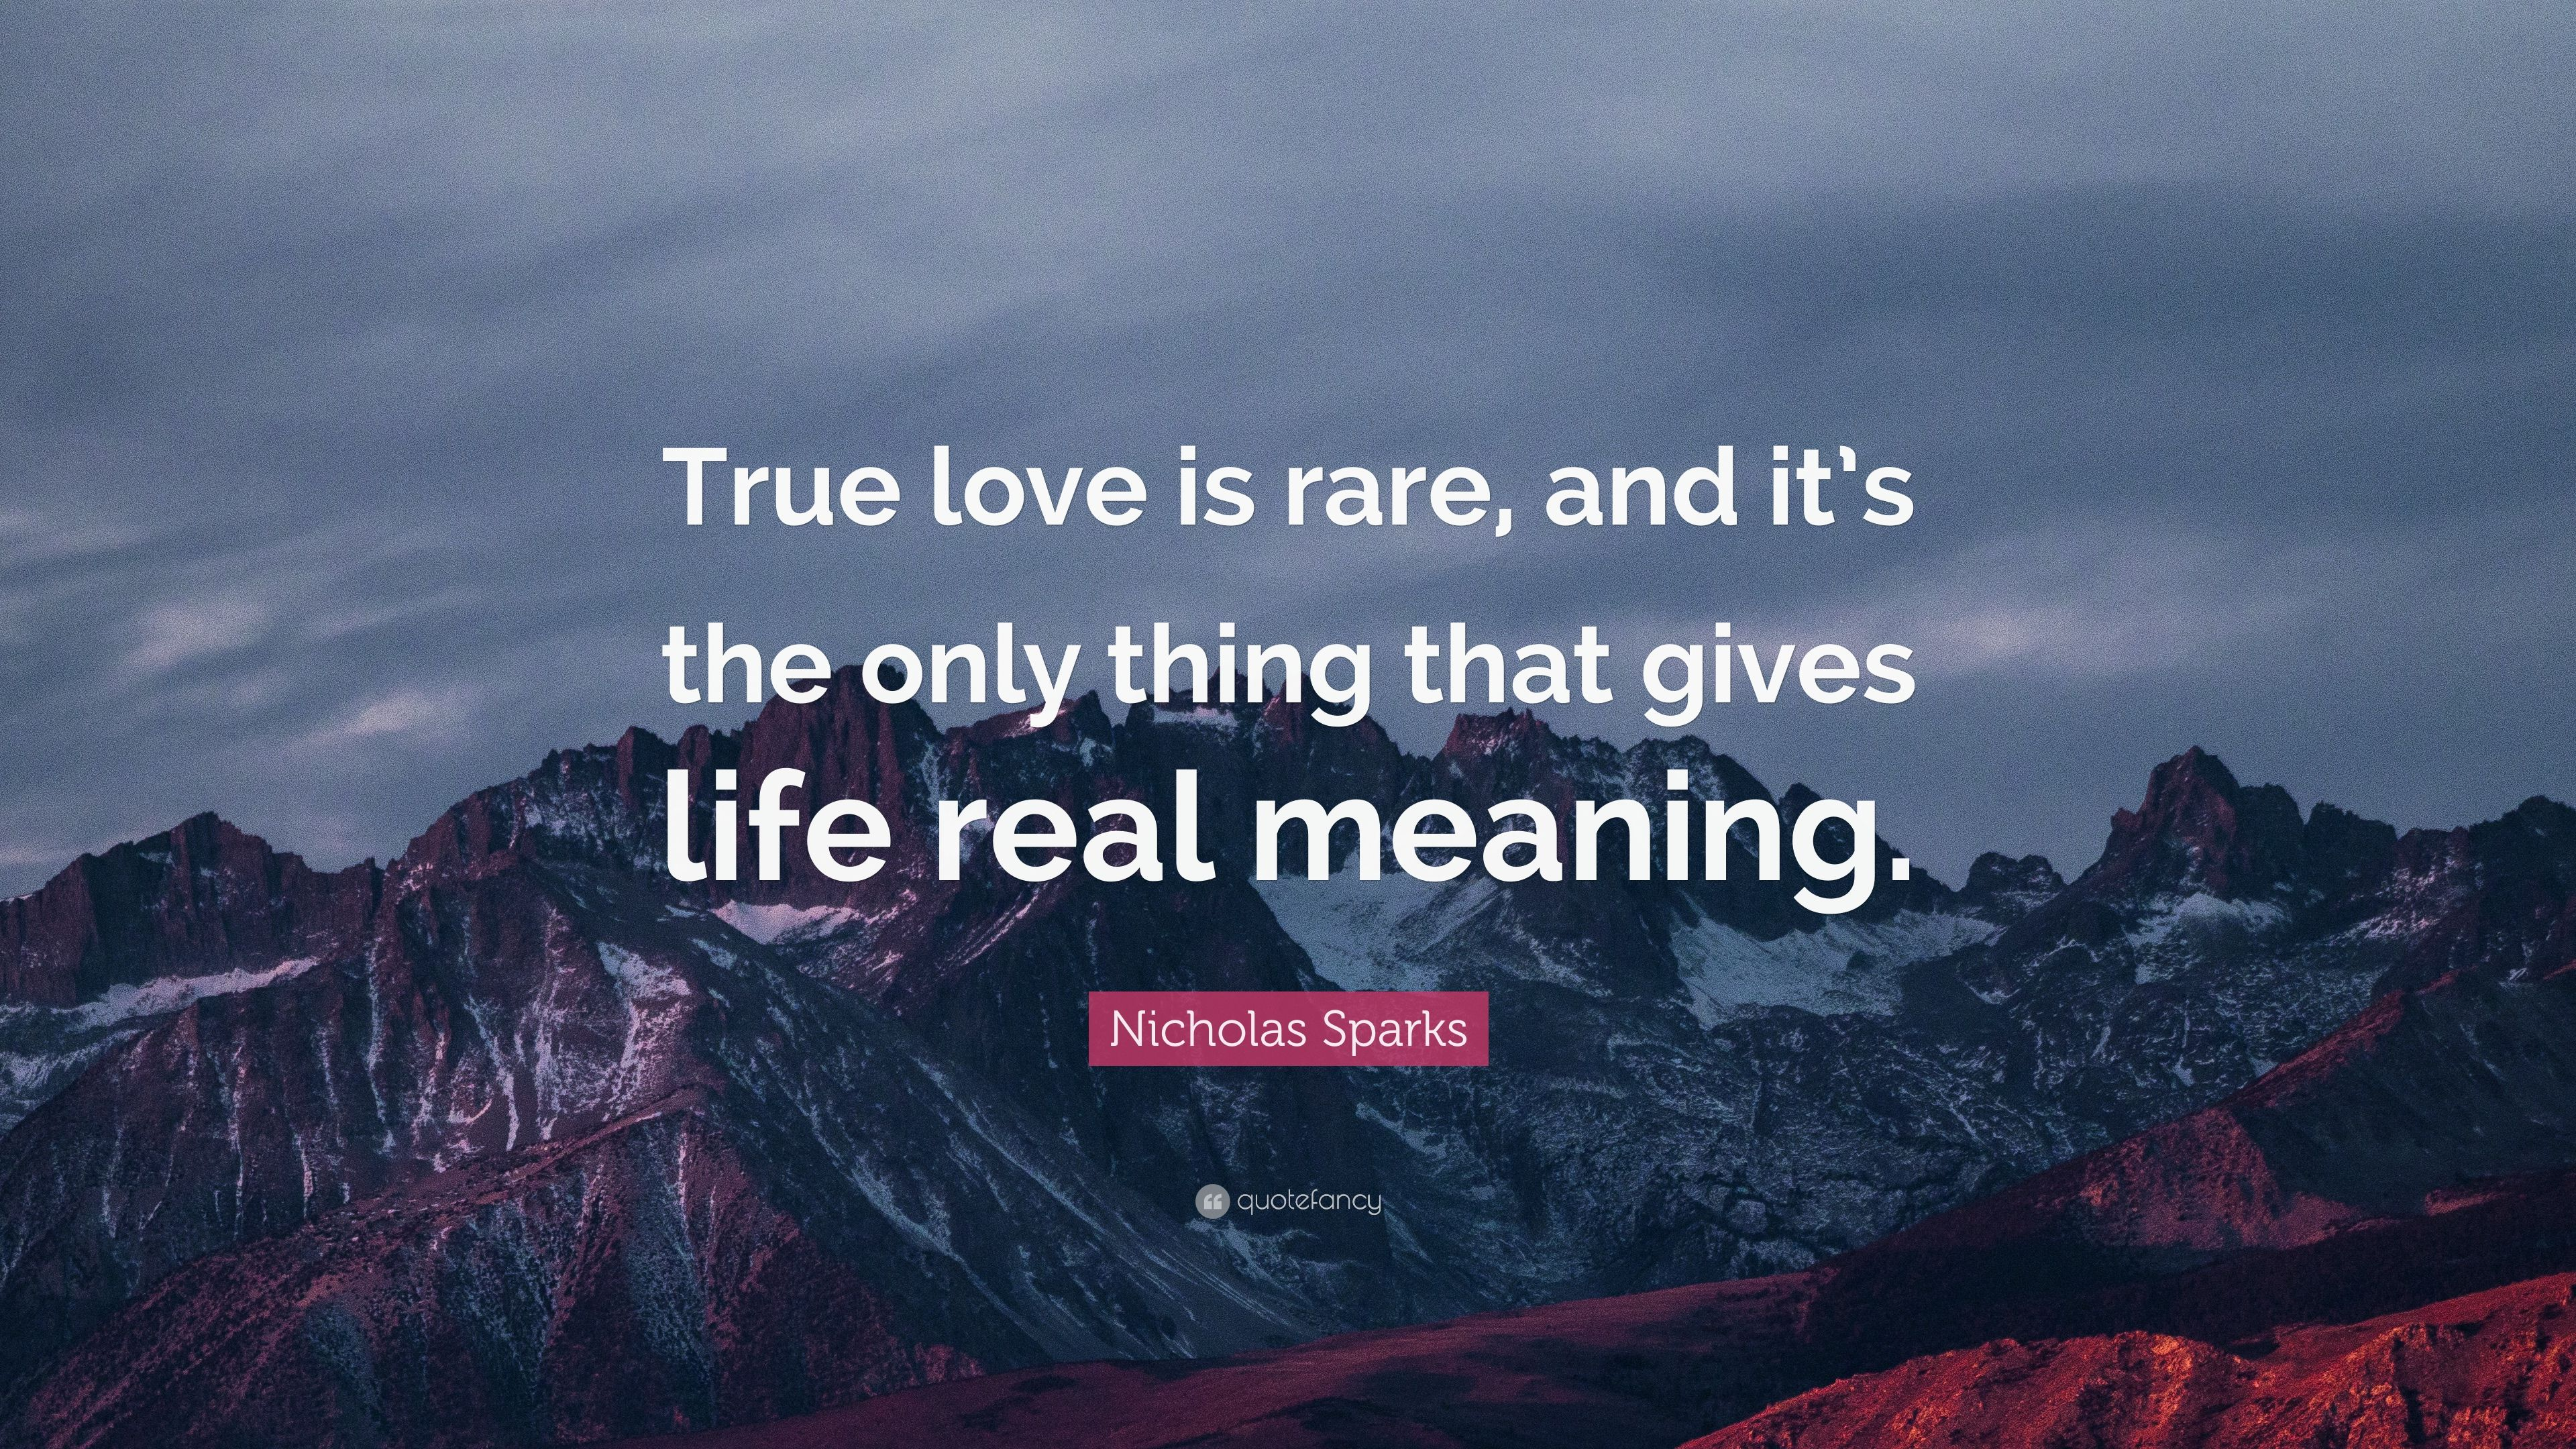 Nicholas Sparks Quote True Love Is Rare And It S The Only Thing